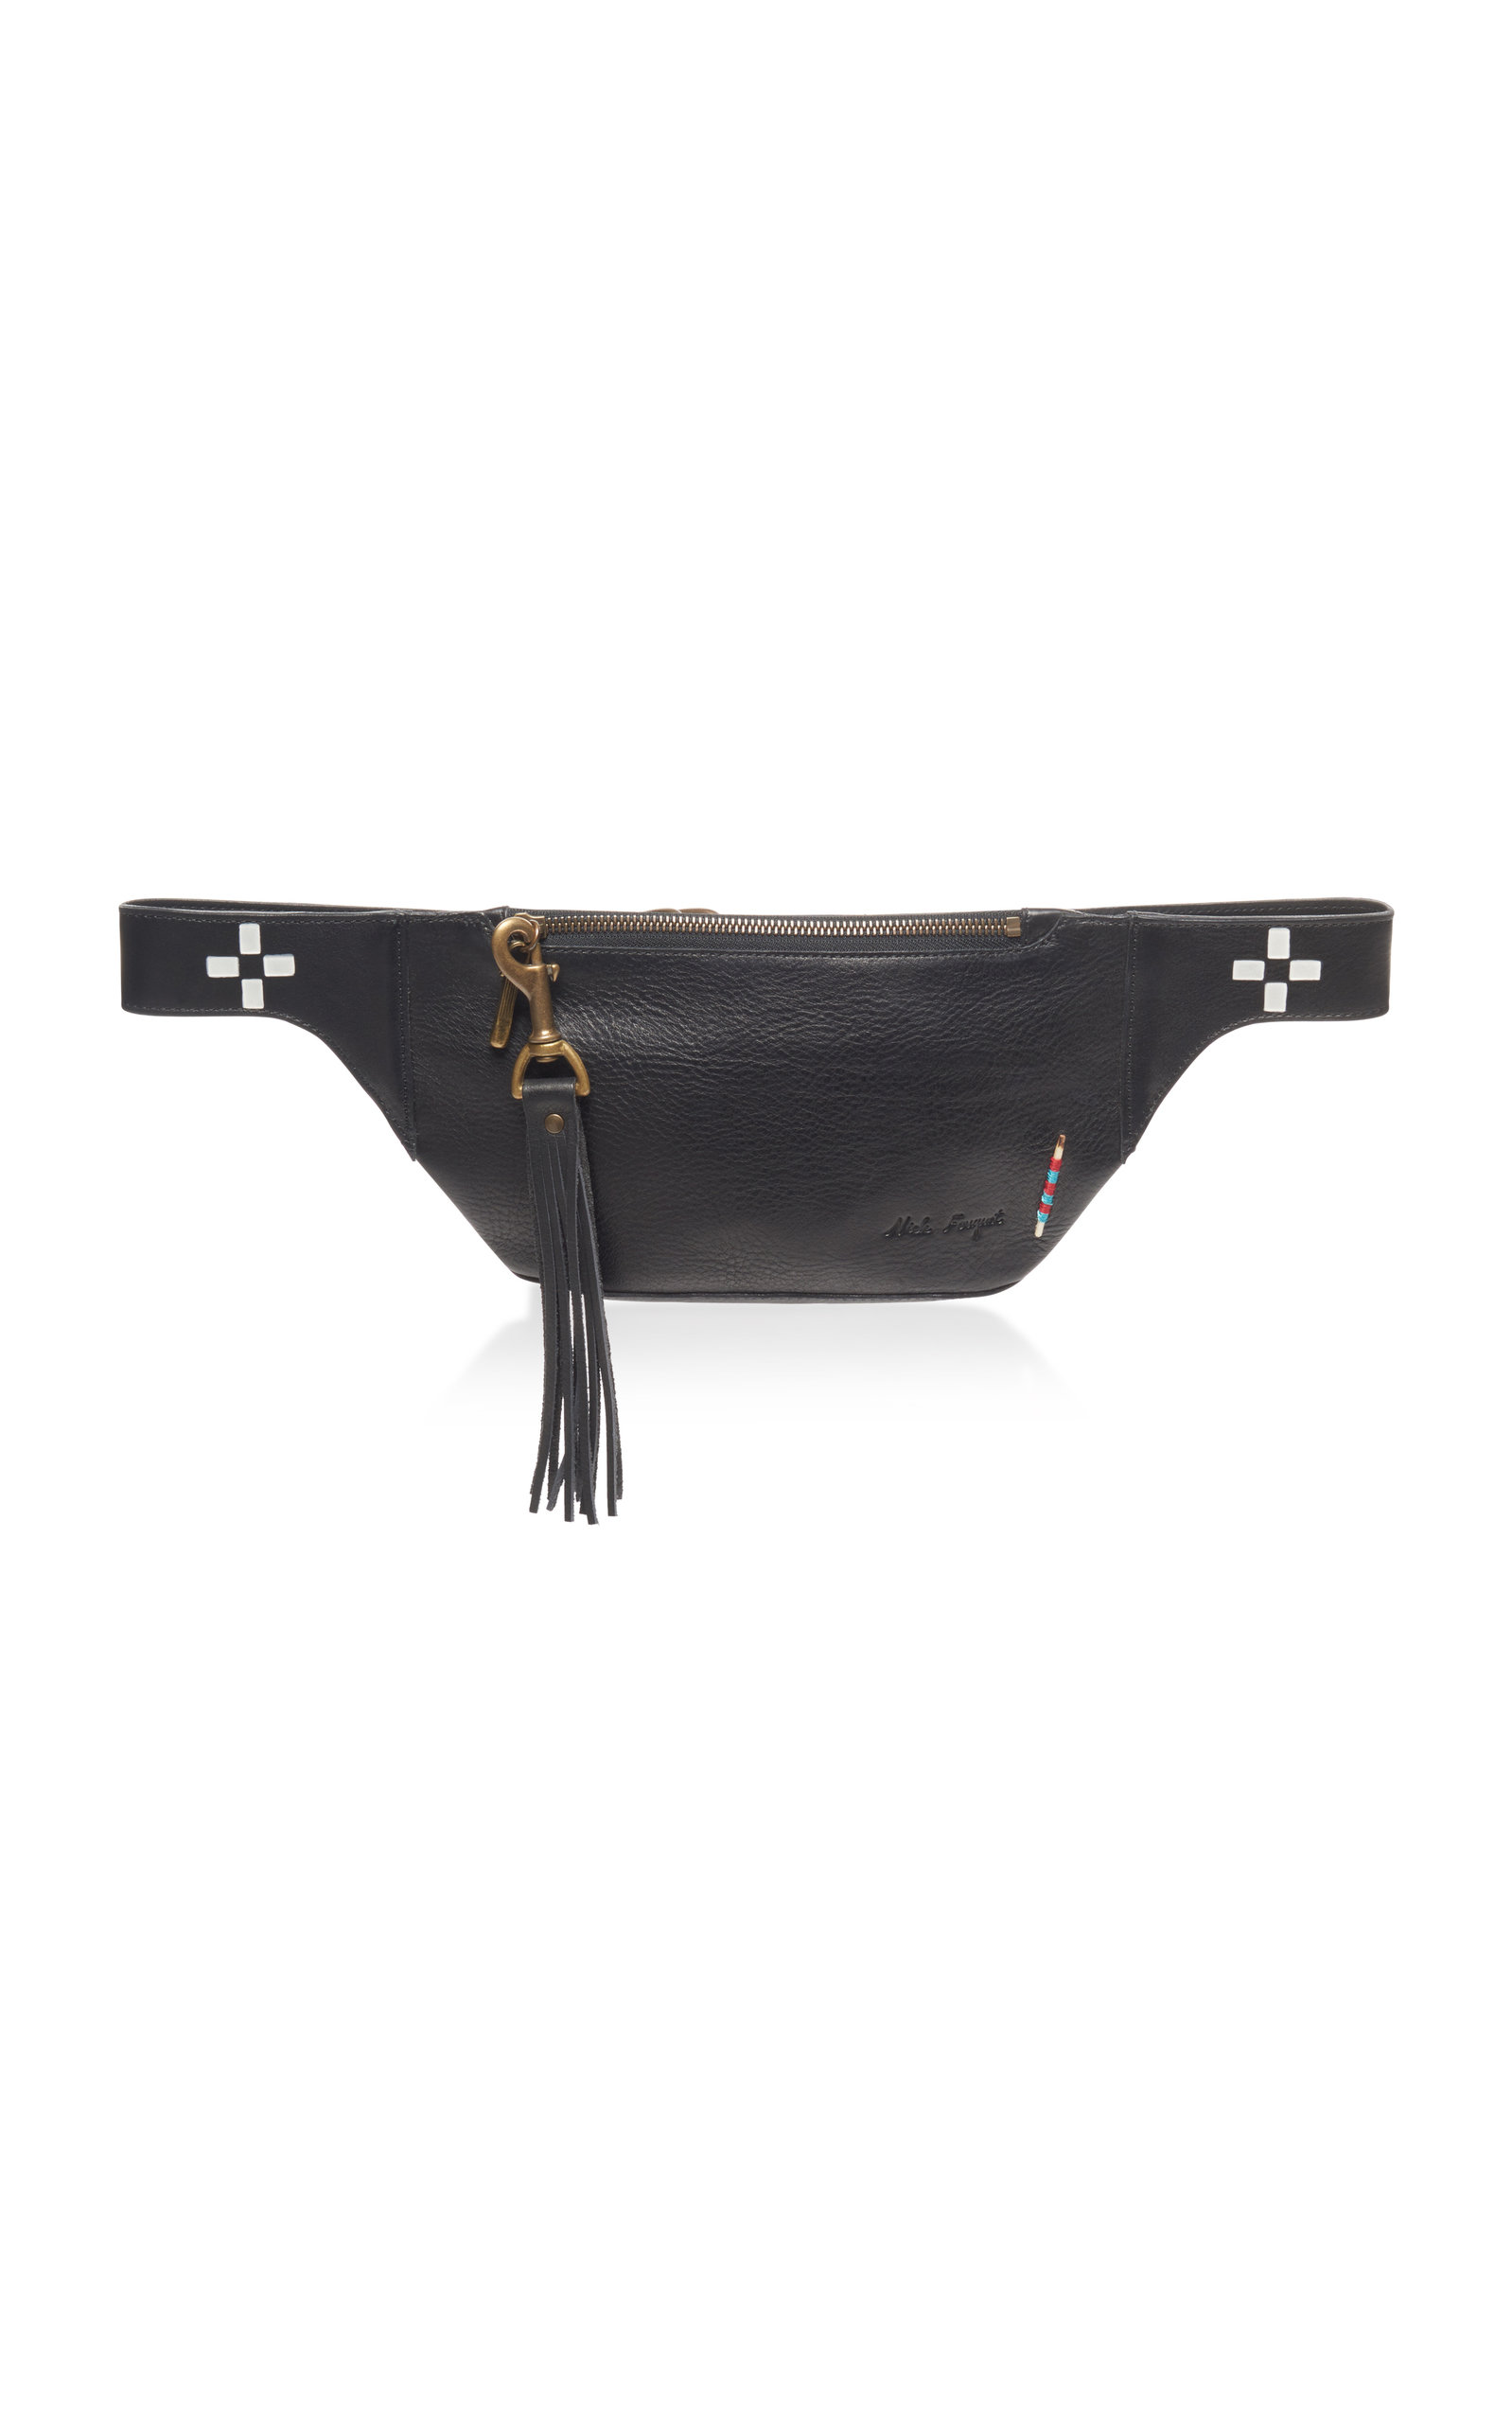 NICK FOUQUET HAND-PAINTED LEATHER FANNY PACK